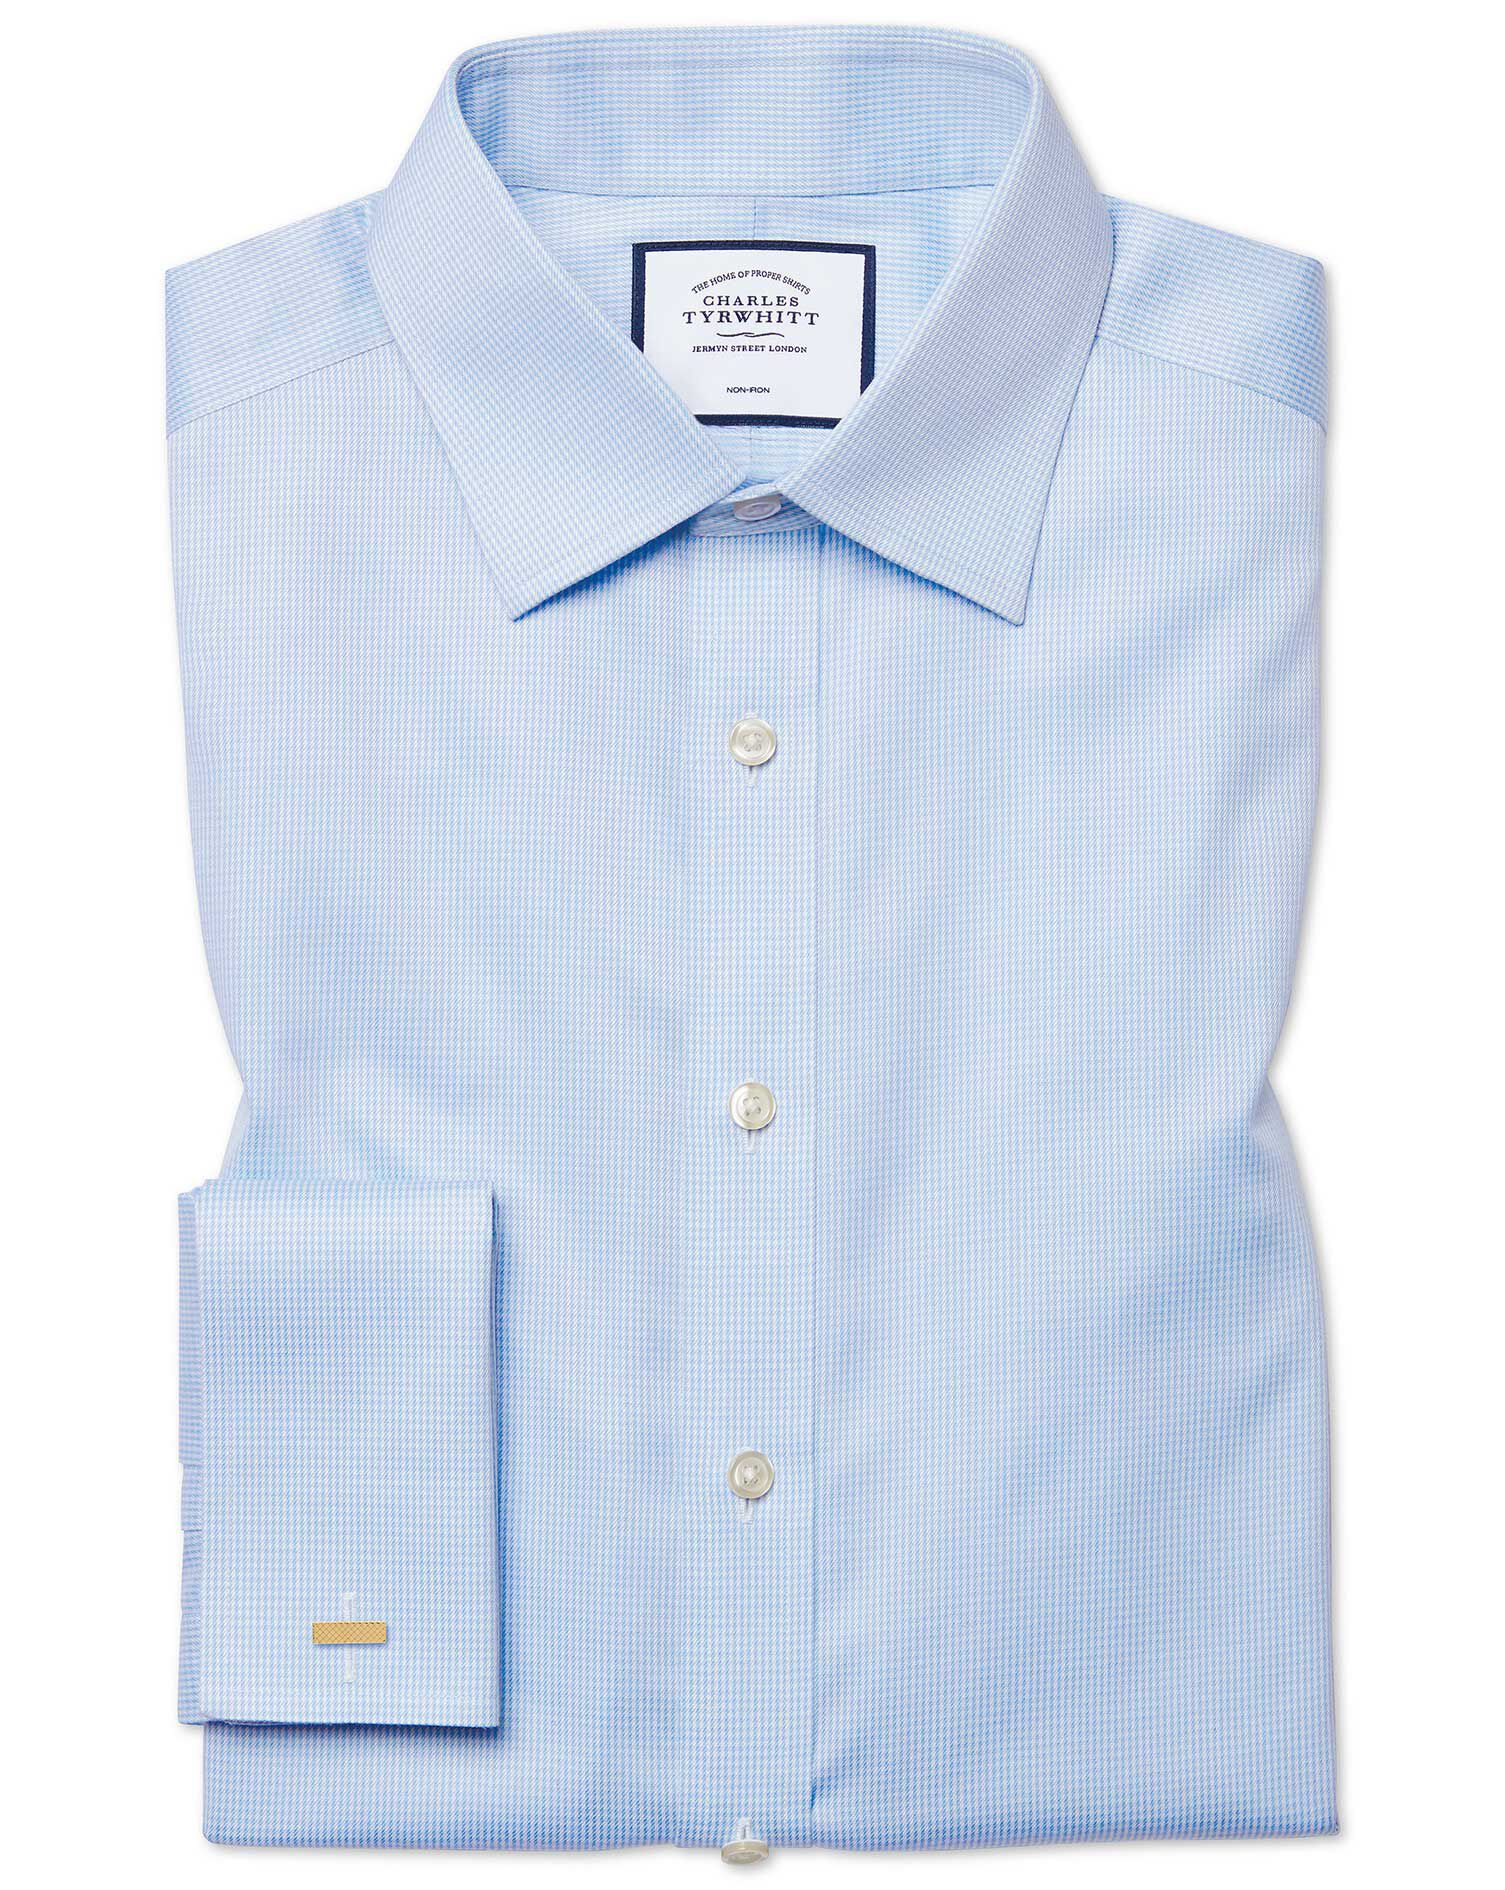 Classic Fit Non-Iron Puppytooth Sky Blue Cotton Formal Shirt Single Cuff Size 16/35 by Charles Tyrwh